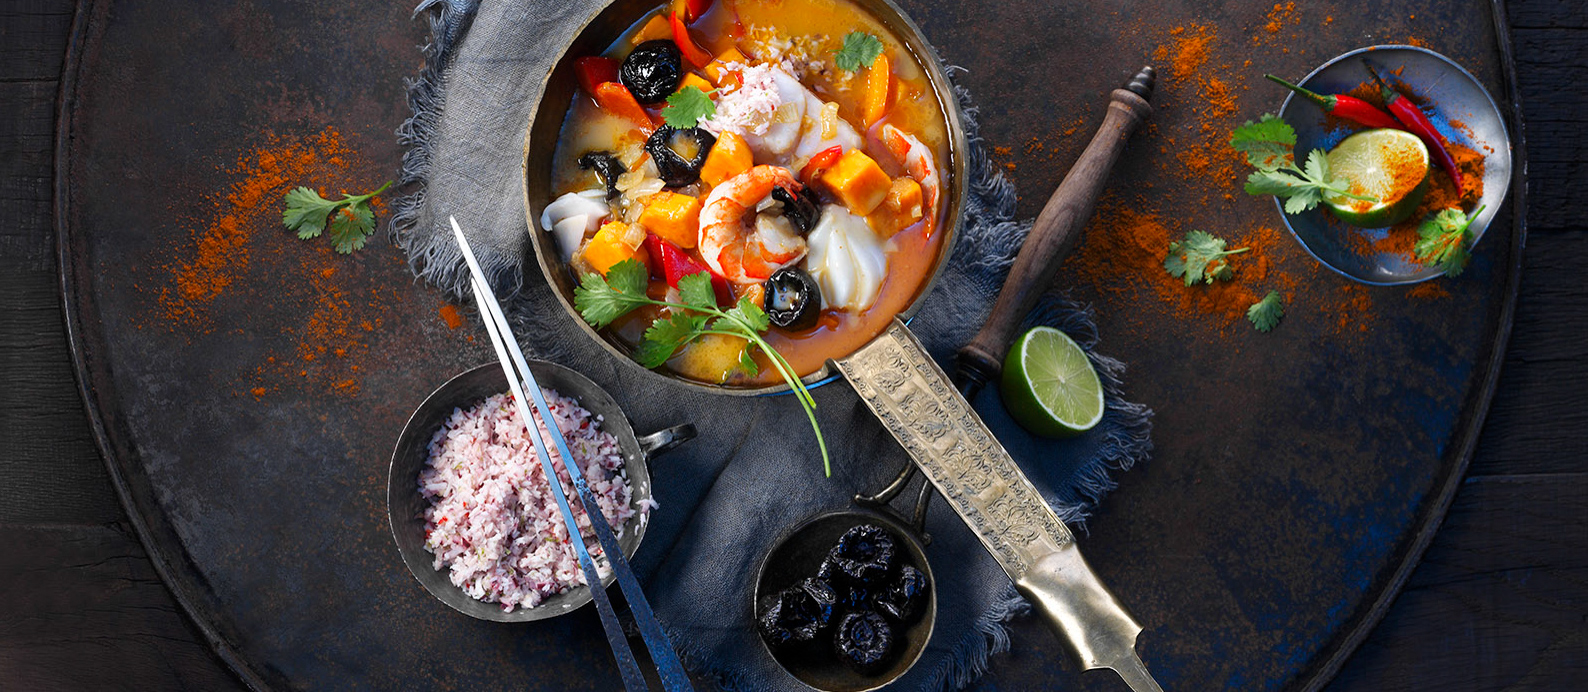 Full of color and flavor, this Southeast Asian fish curry is an unexpected twist on a classic curry, with prune taking the place of tangy tamarind